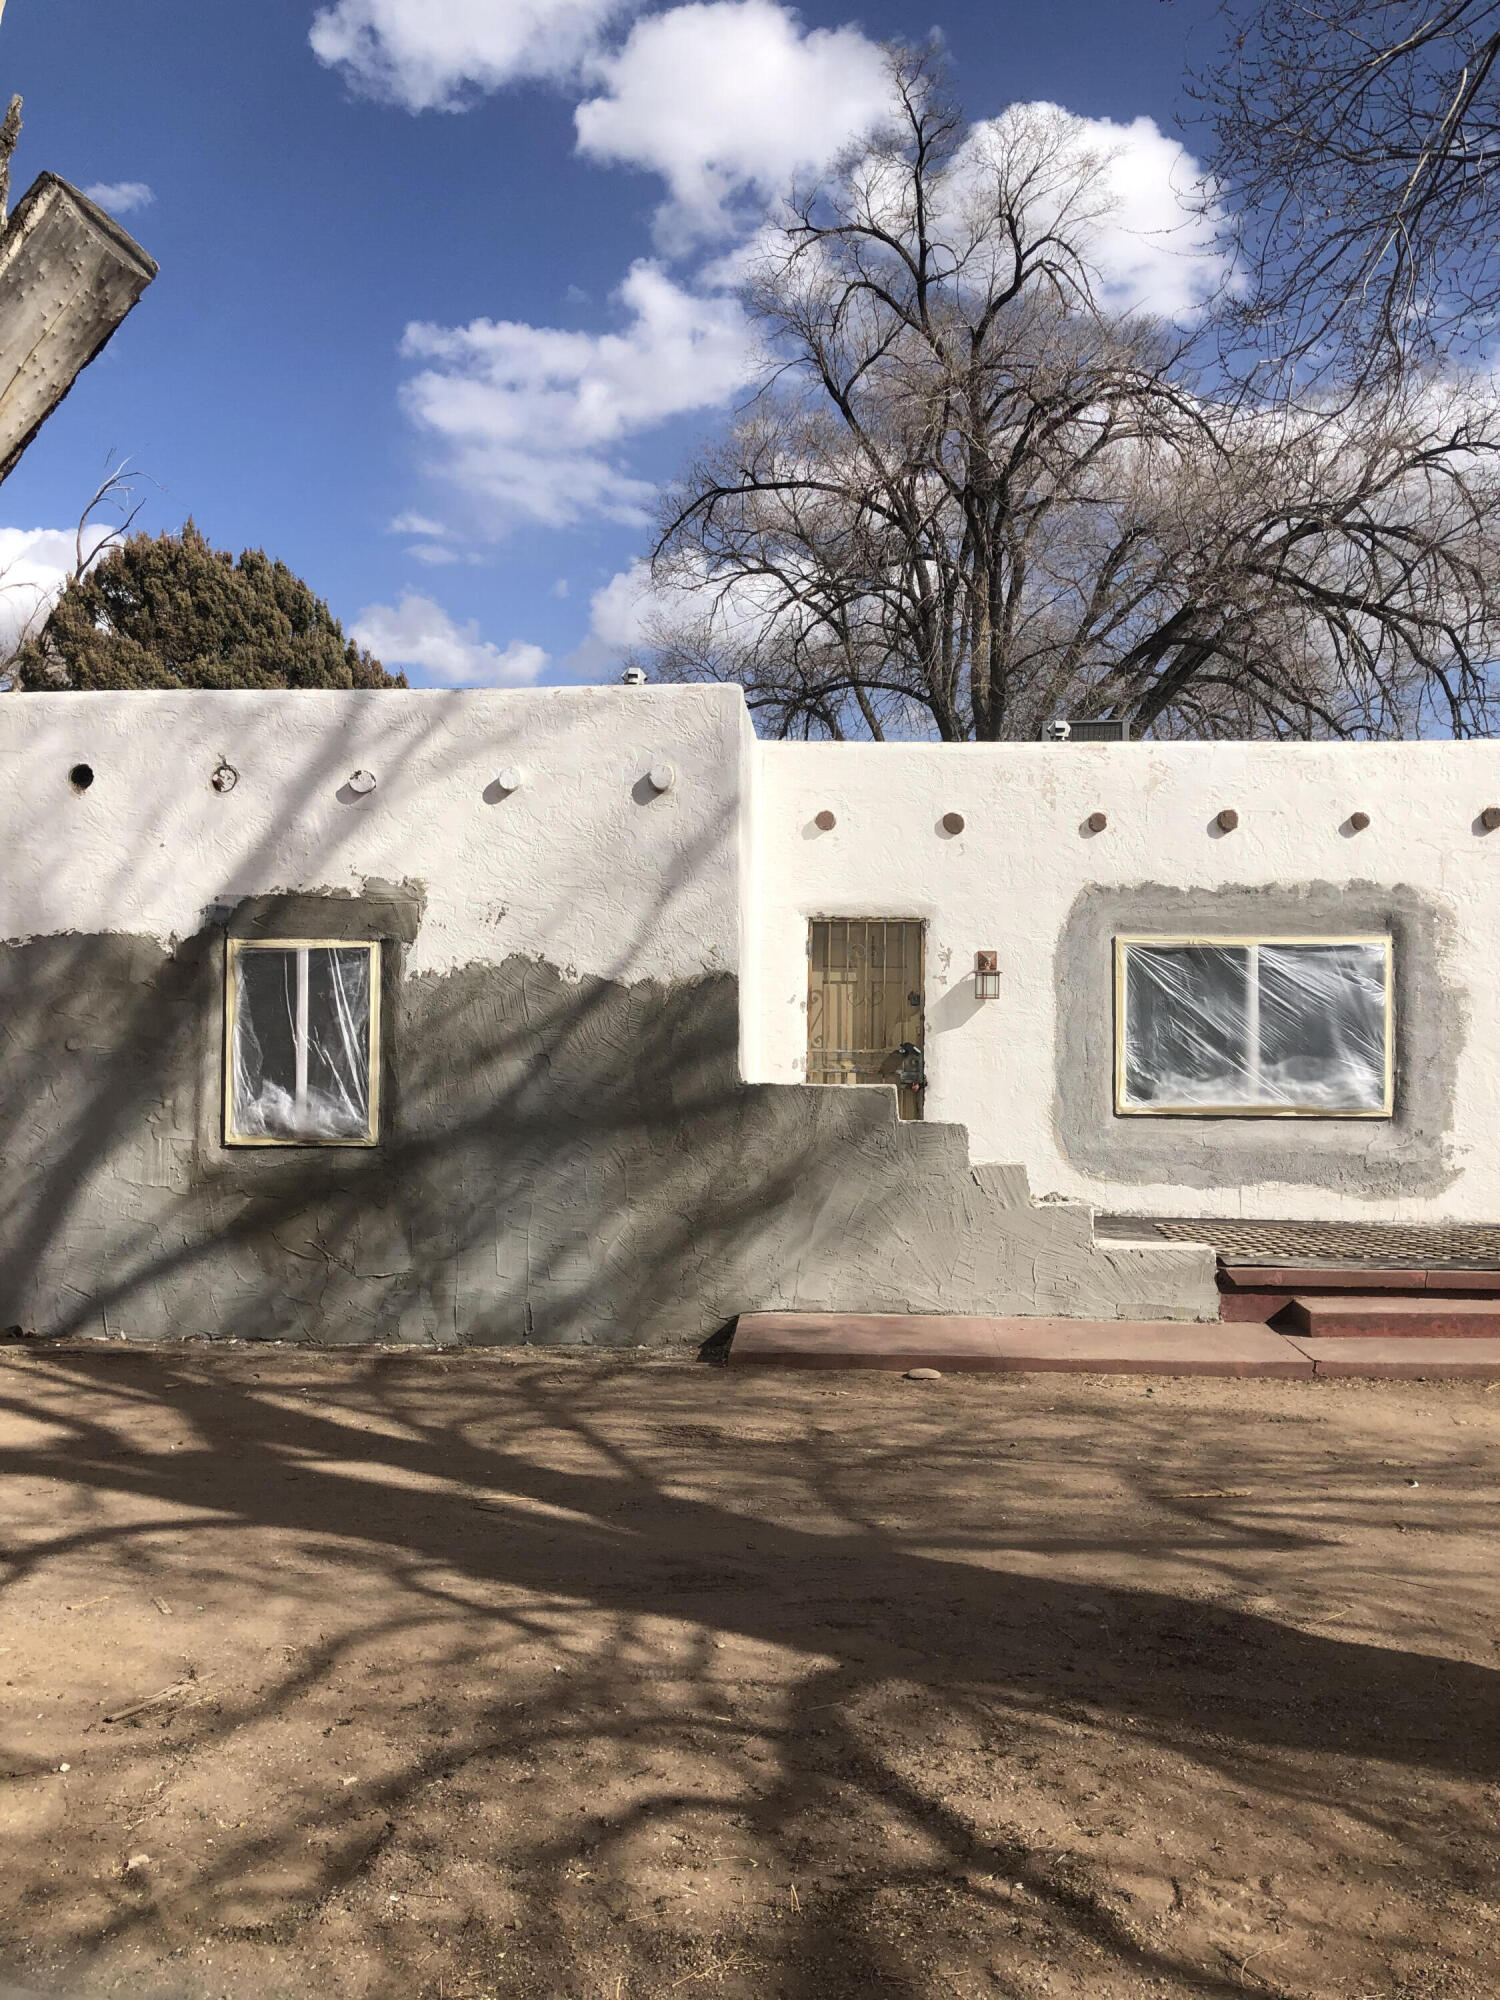 Experienced investors or Builder/ Flipper special.Due to unforeseen setbacks the seller is letting this property go ''mid restoration''. Amazing opportunity to complete this 3dr/3ba almost a century old partial Adobe. The hard work has already been done in the substantial clean out and addition of new vinyl windows and steel doors. Updated cabs - exterior stucco was Re-meshed and mud coated and just needs your choice of top coat stucco color. The  home sits on almost an acre and is currently zoned as R-1 with horses allowed, but would be a strong contender for rezonig as C-1 or SU-1 due to its prime location. Seller planned to subdivide the land into 2 more home lots with the unobstructed views at the back! The possibilities are endless with this much land at this low price!